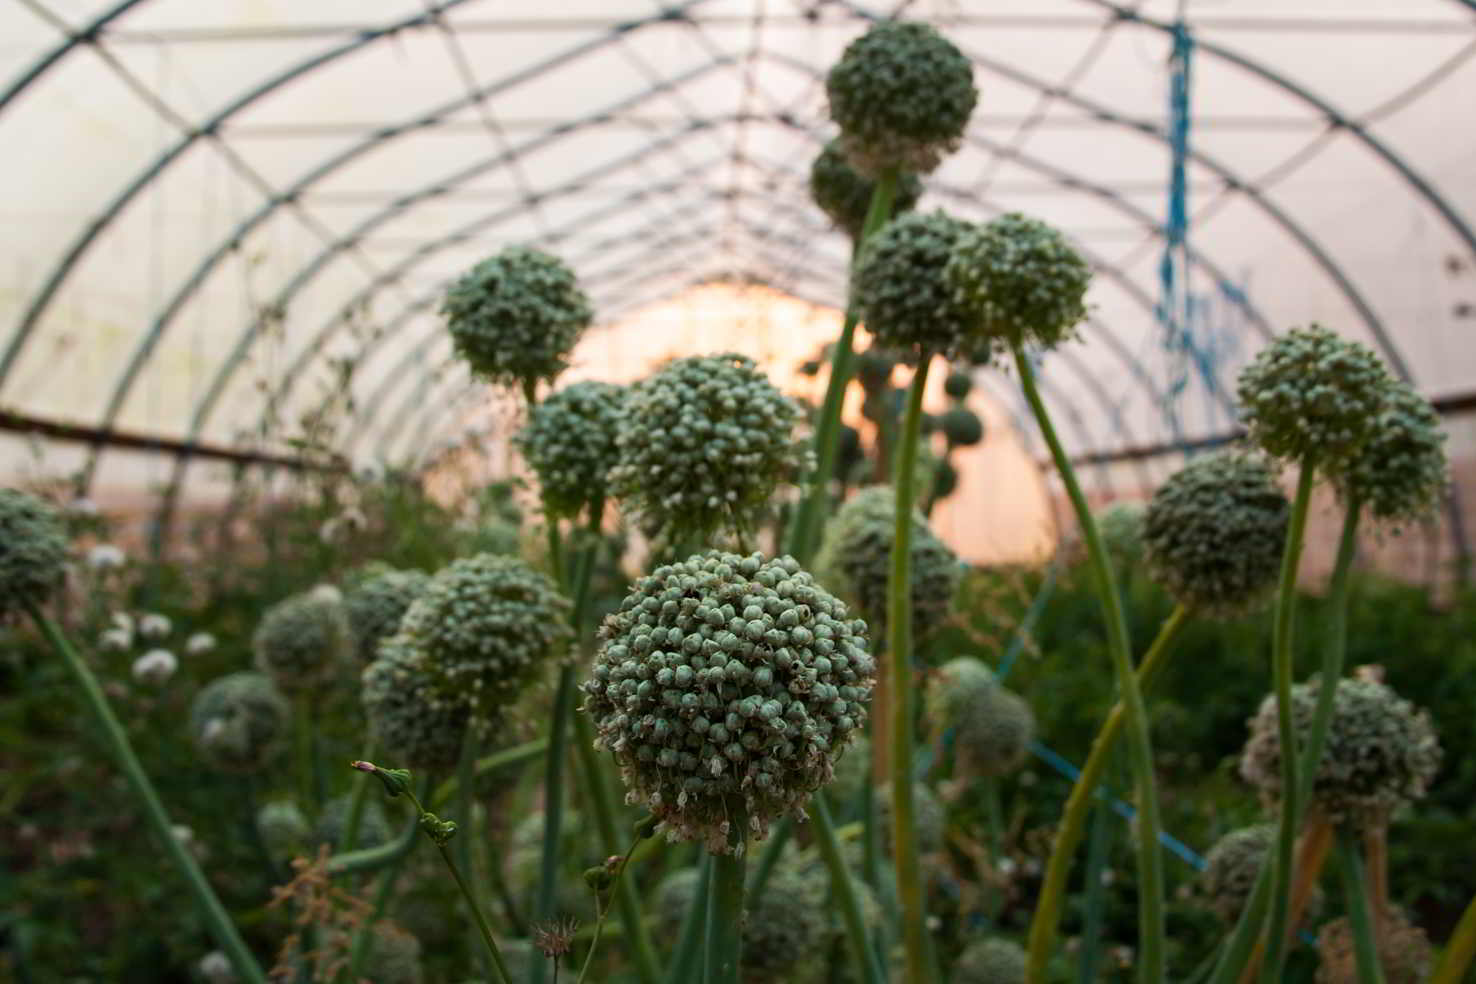 Leek seed heads at Amara Farm, Comox Valley, BC. Credit: Michelle Root